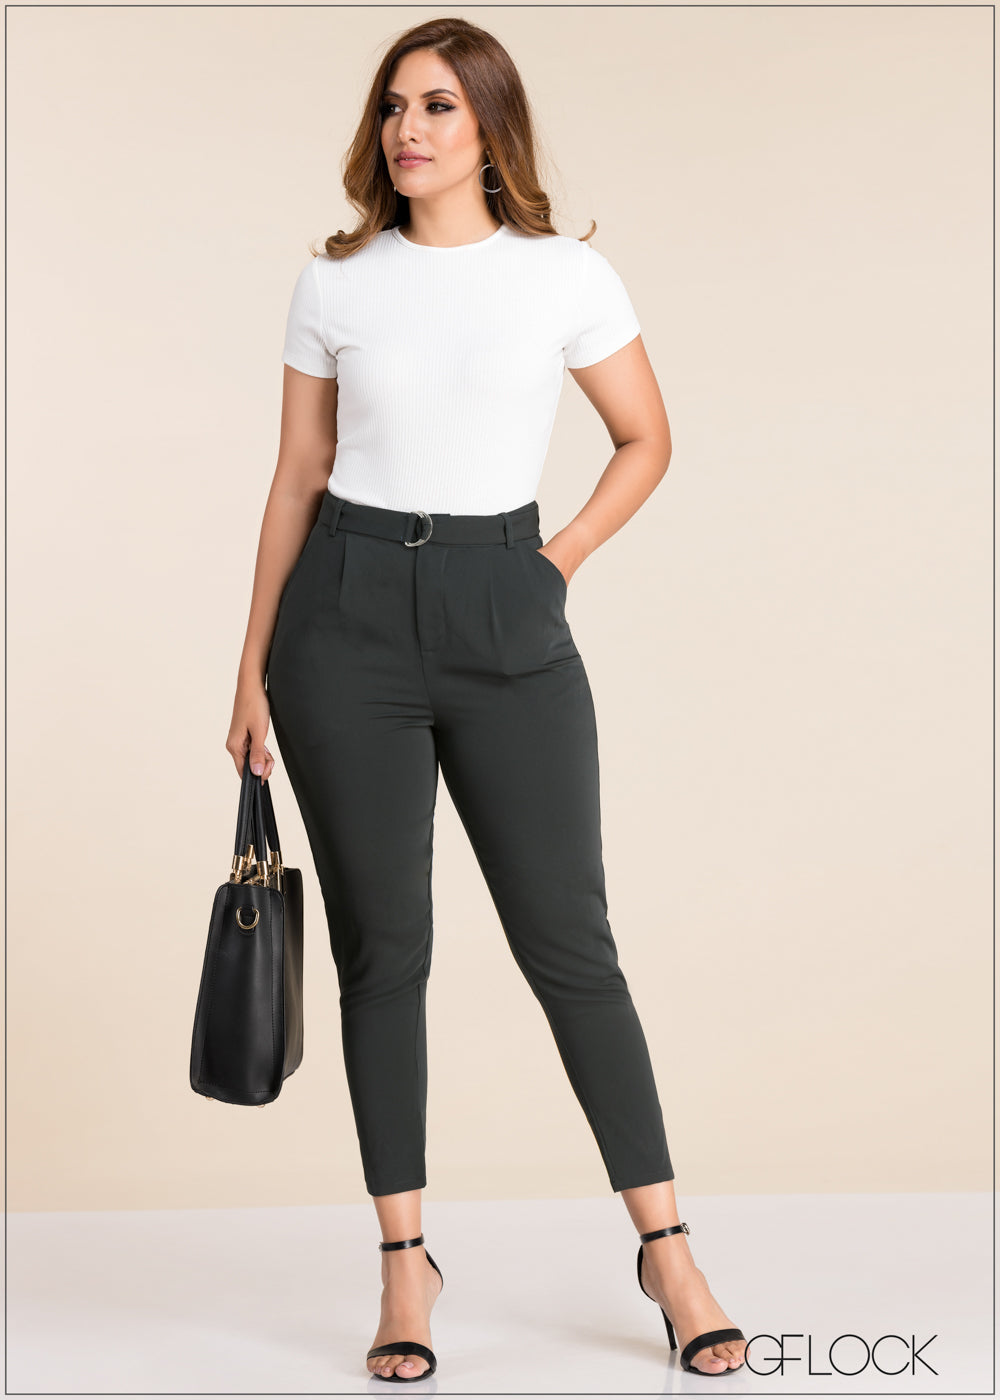 High Waist Trapped Pant - GFLOCK.LK